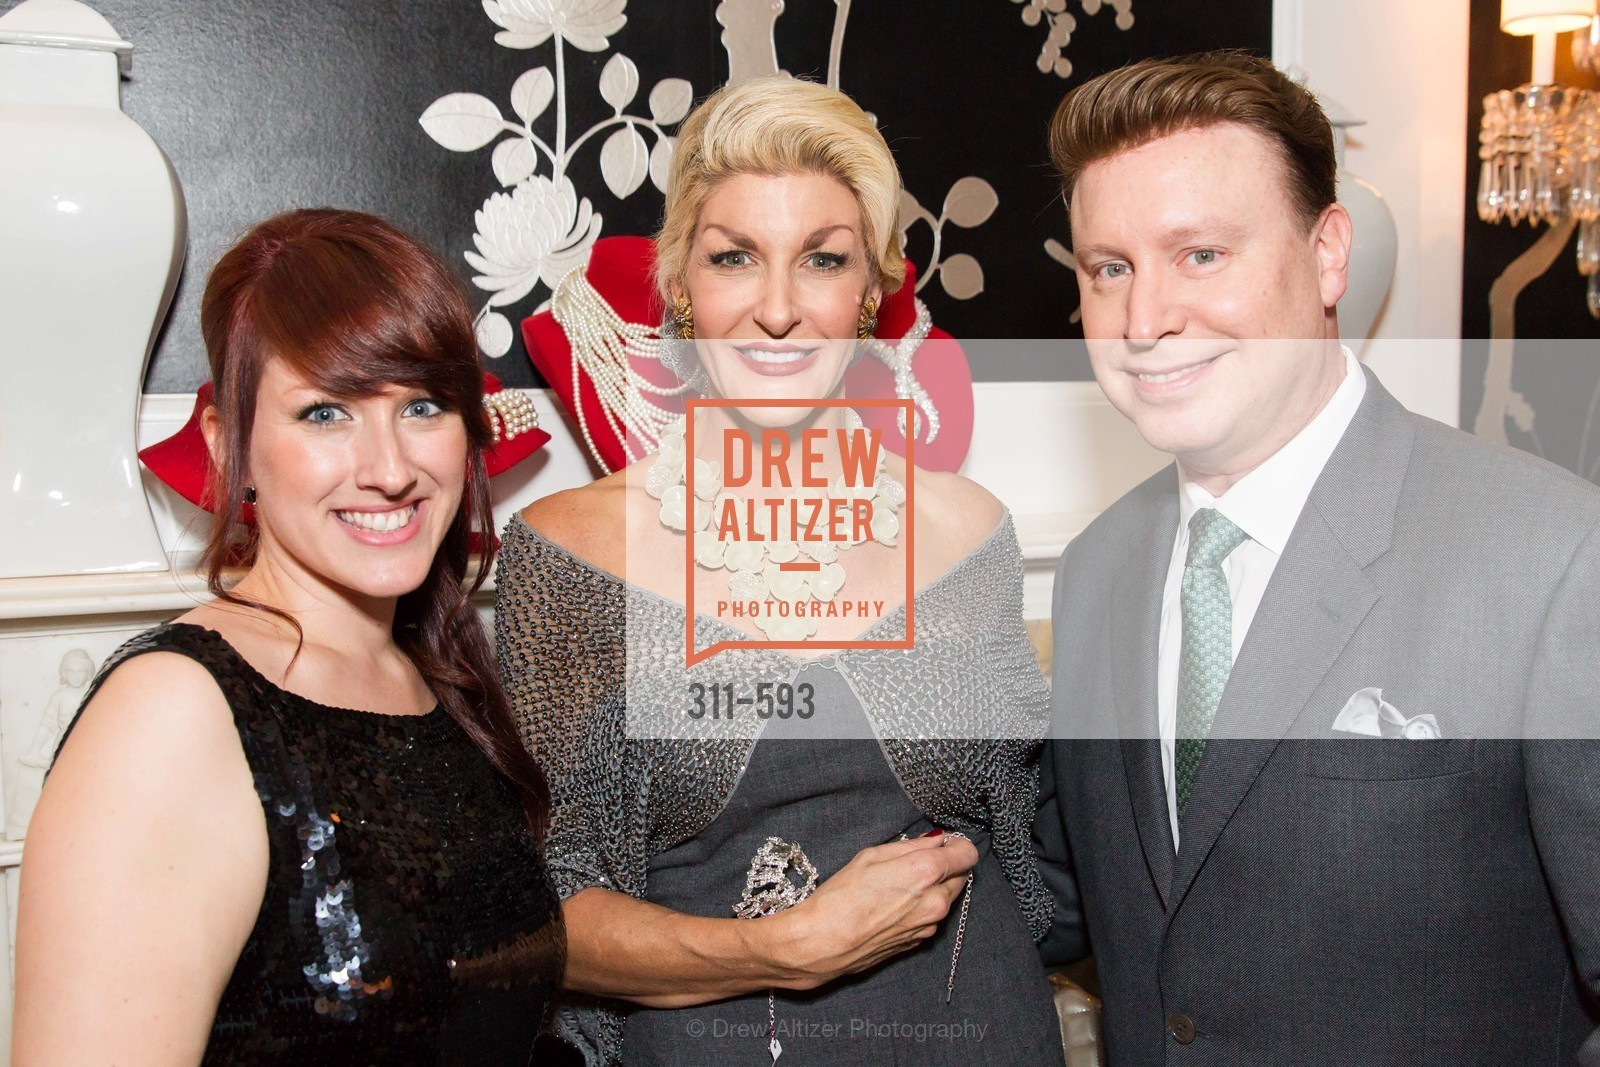 Kariana Brown, Karen Caldwell, Doug Waggener, COUTURE FOR A CAUSE, US, October 5th, 2014,Drew Altizer, Drew Altizer Photography, full-service agency, private events, San Francisco photographer, photographer california